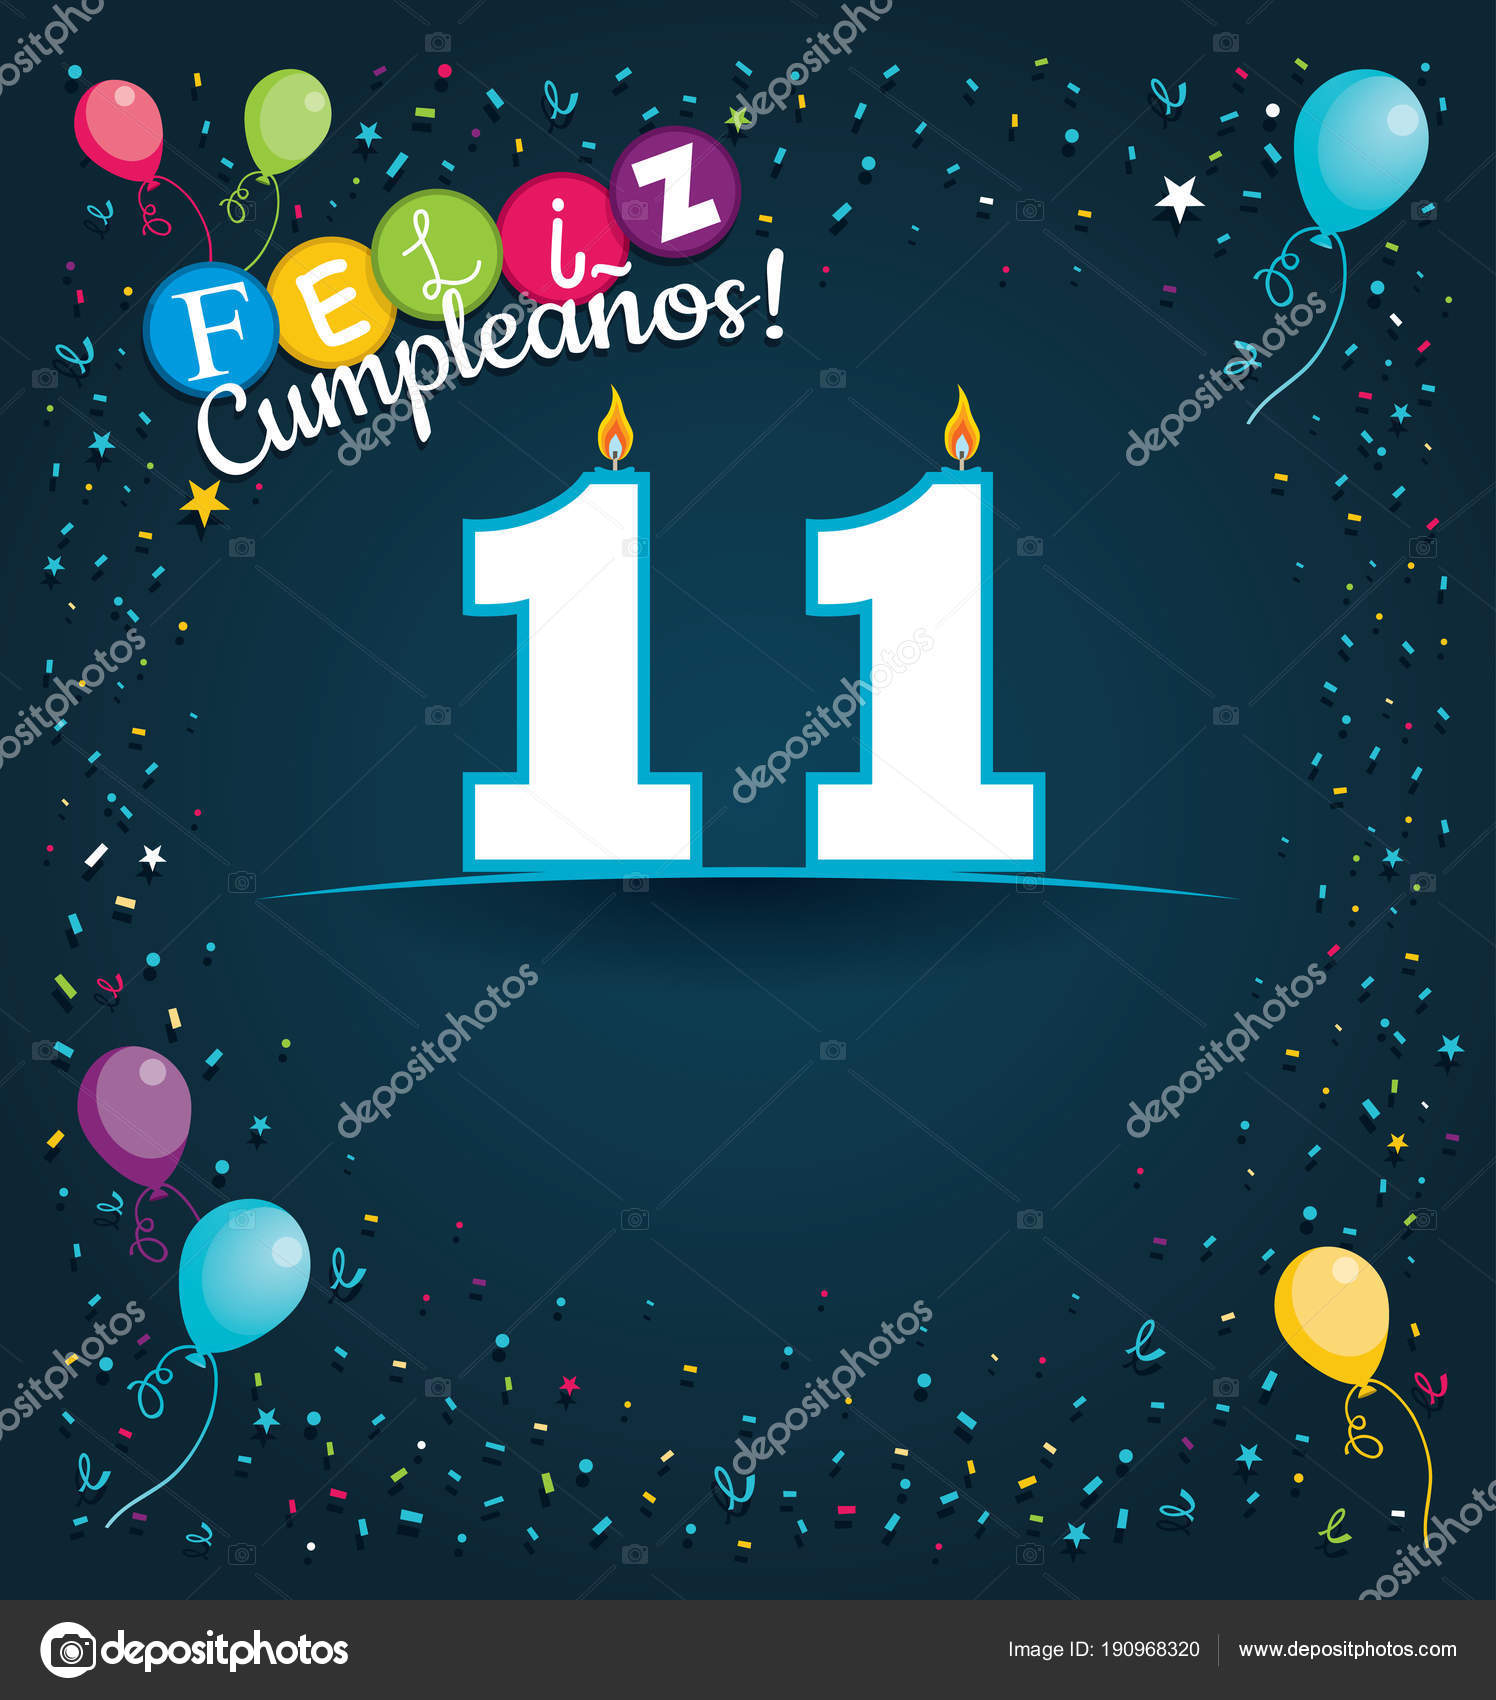 Feliz cumpleanos happy birthday spanish language greeting card white feliz cumpleanos 11 happy birthday 11 in spanish language greeting card with white candles in the form of number with background of balloons and m4hsunfo